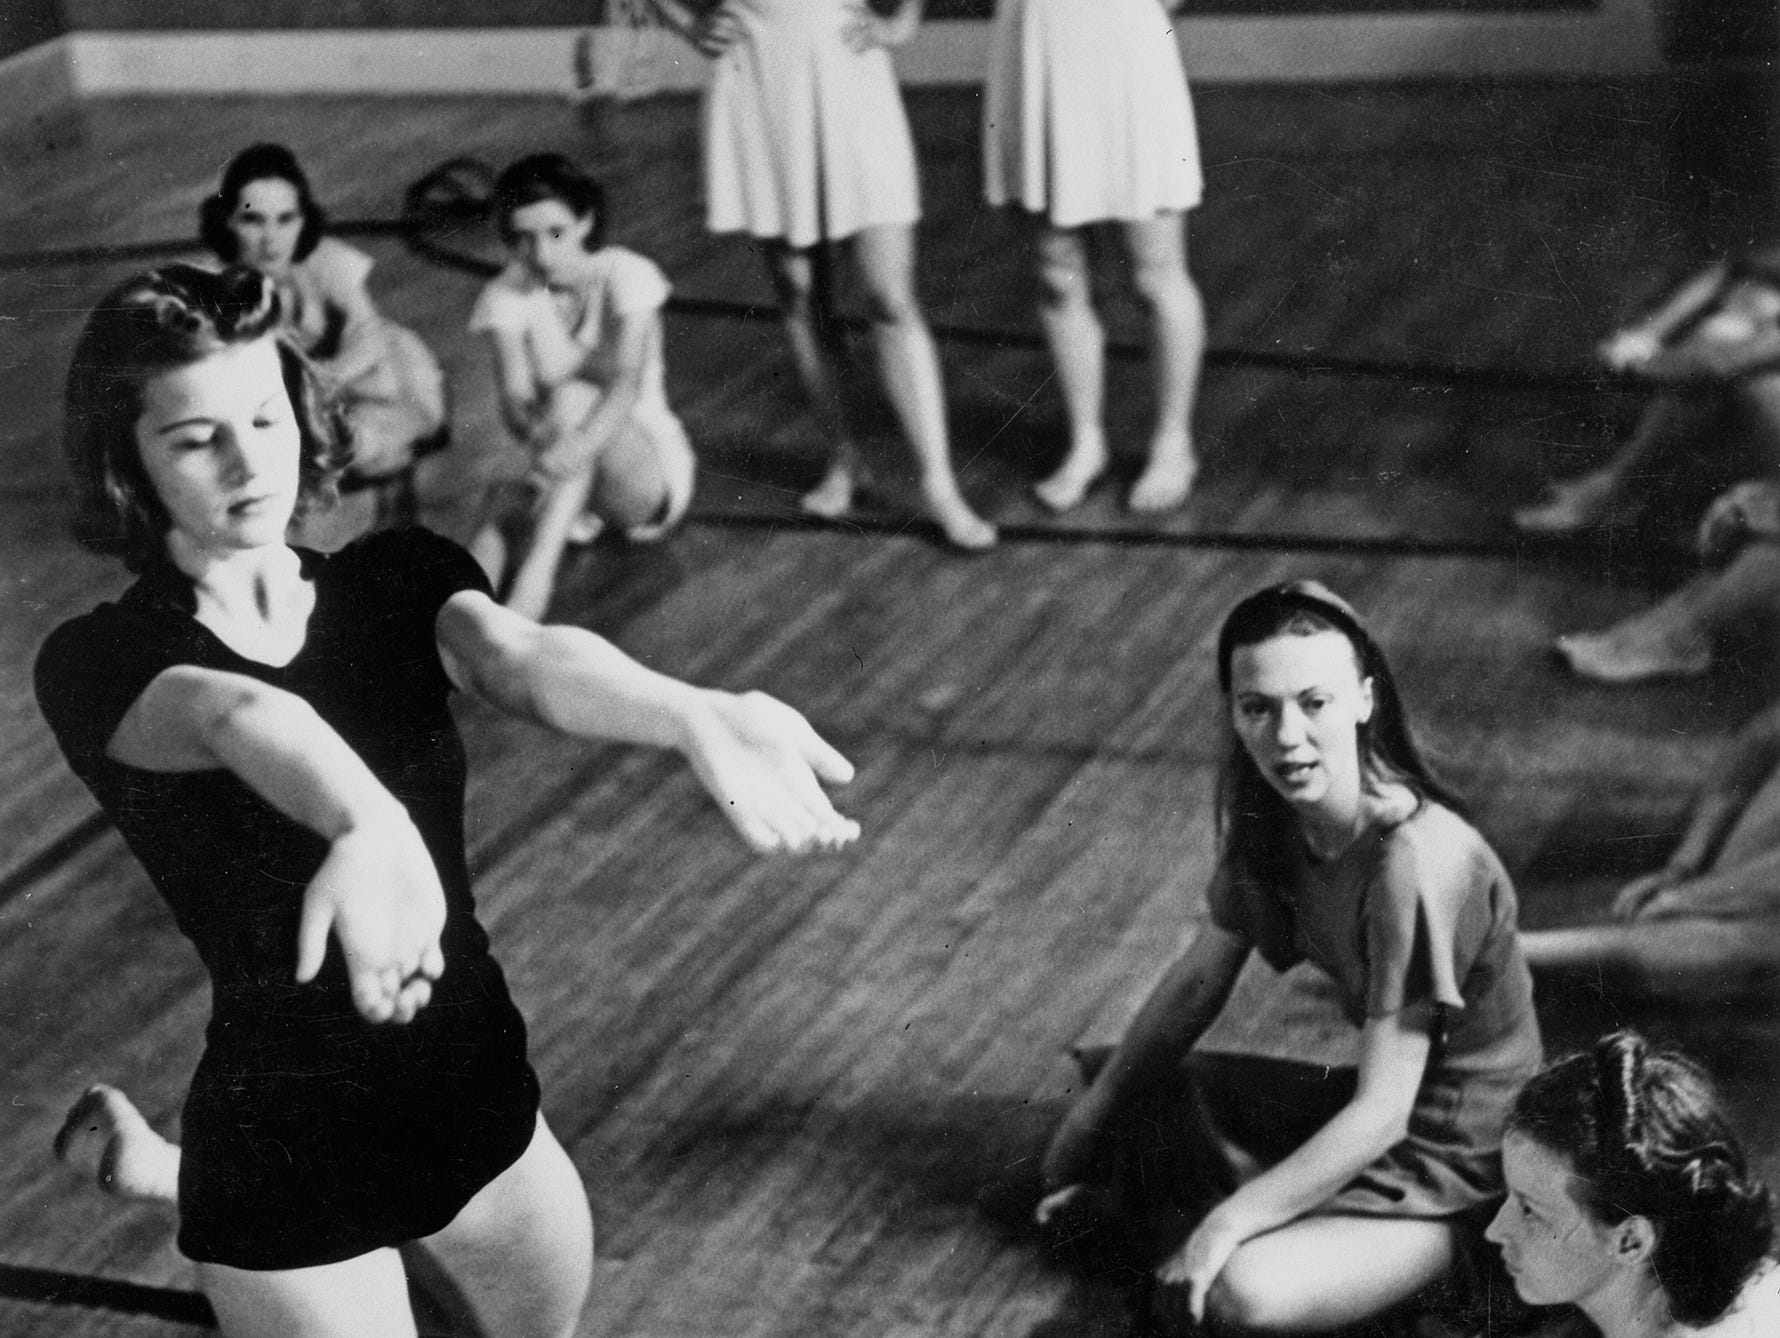 Betty (left) honed her dance skills under the tutelage of Martha Hill (seated, center) and Martha Graham (not pictured) at Bennington College School of Dance in the summer of 1937.